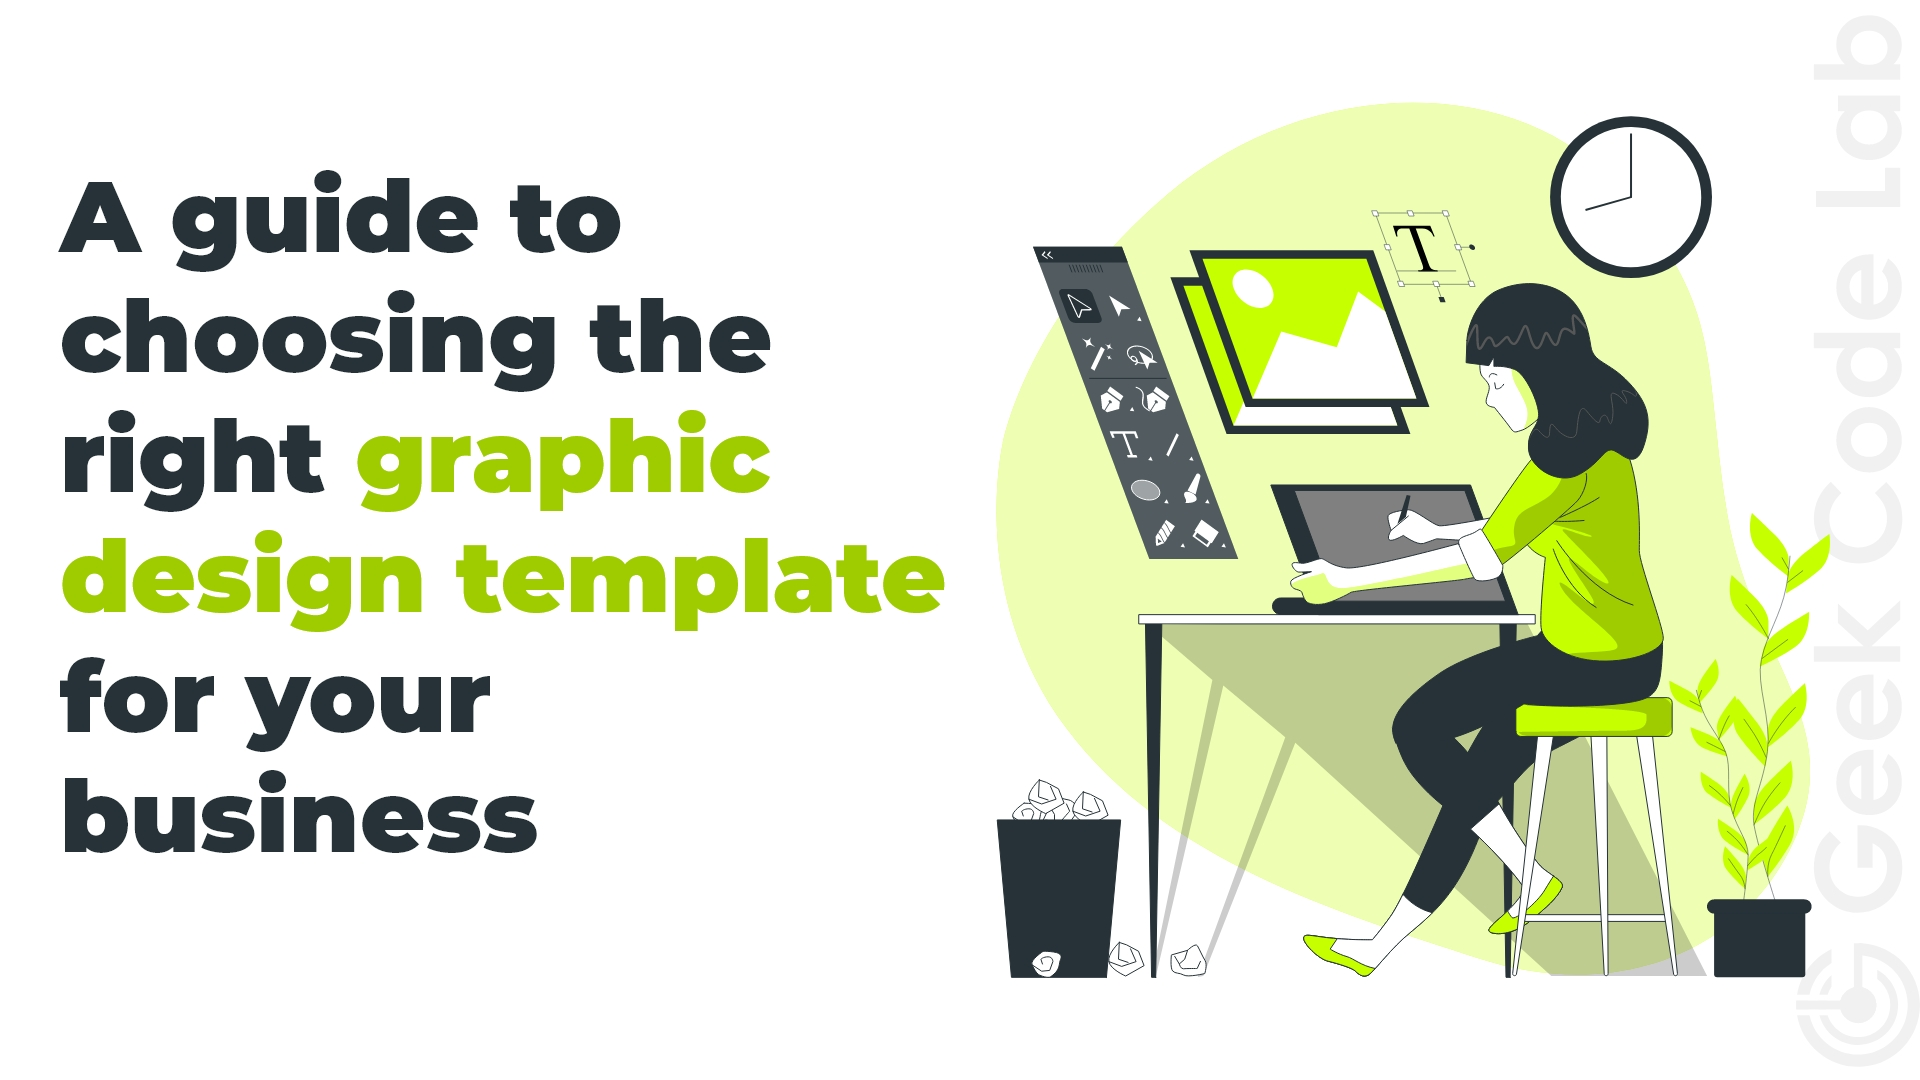 A guide to choosing the right graphic design template for your business